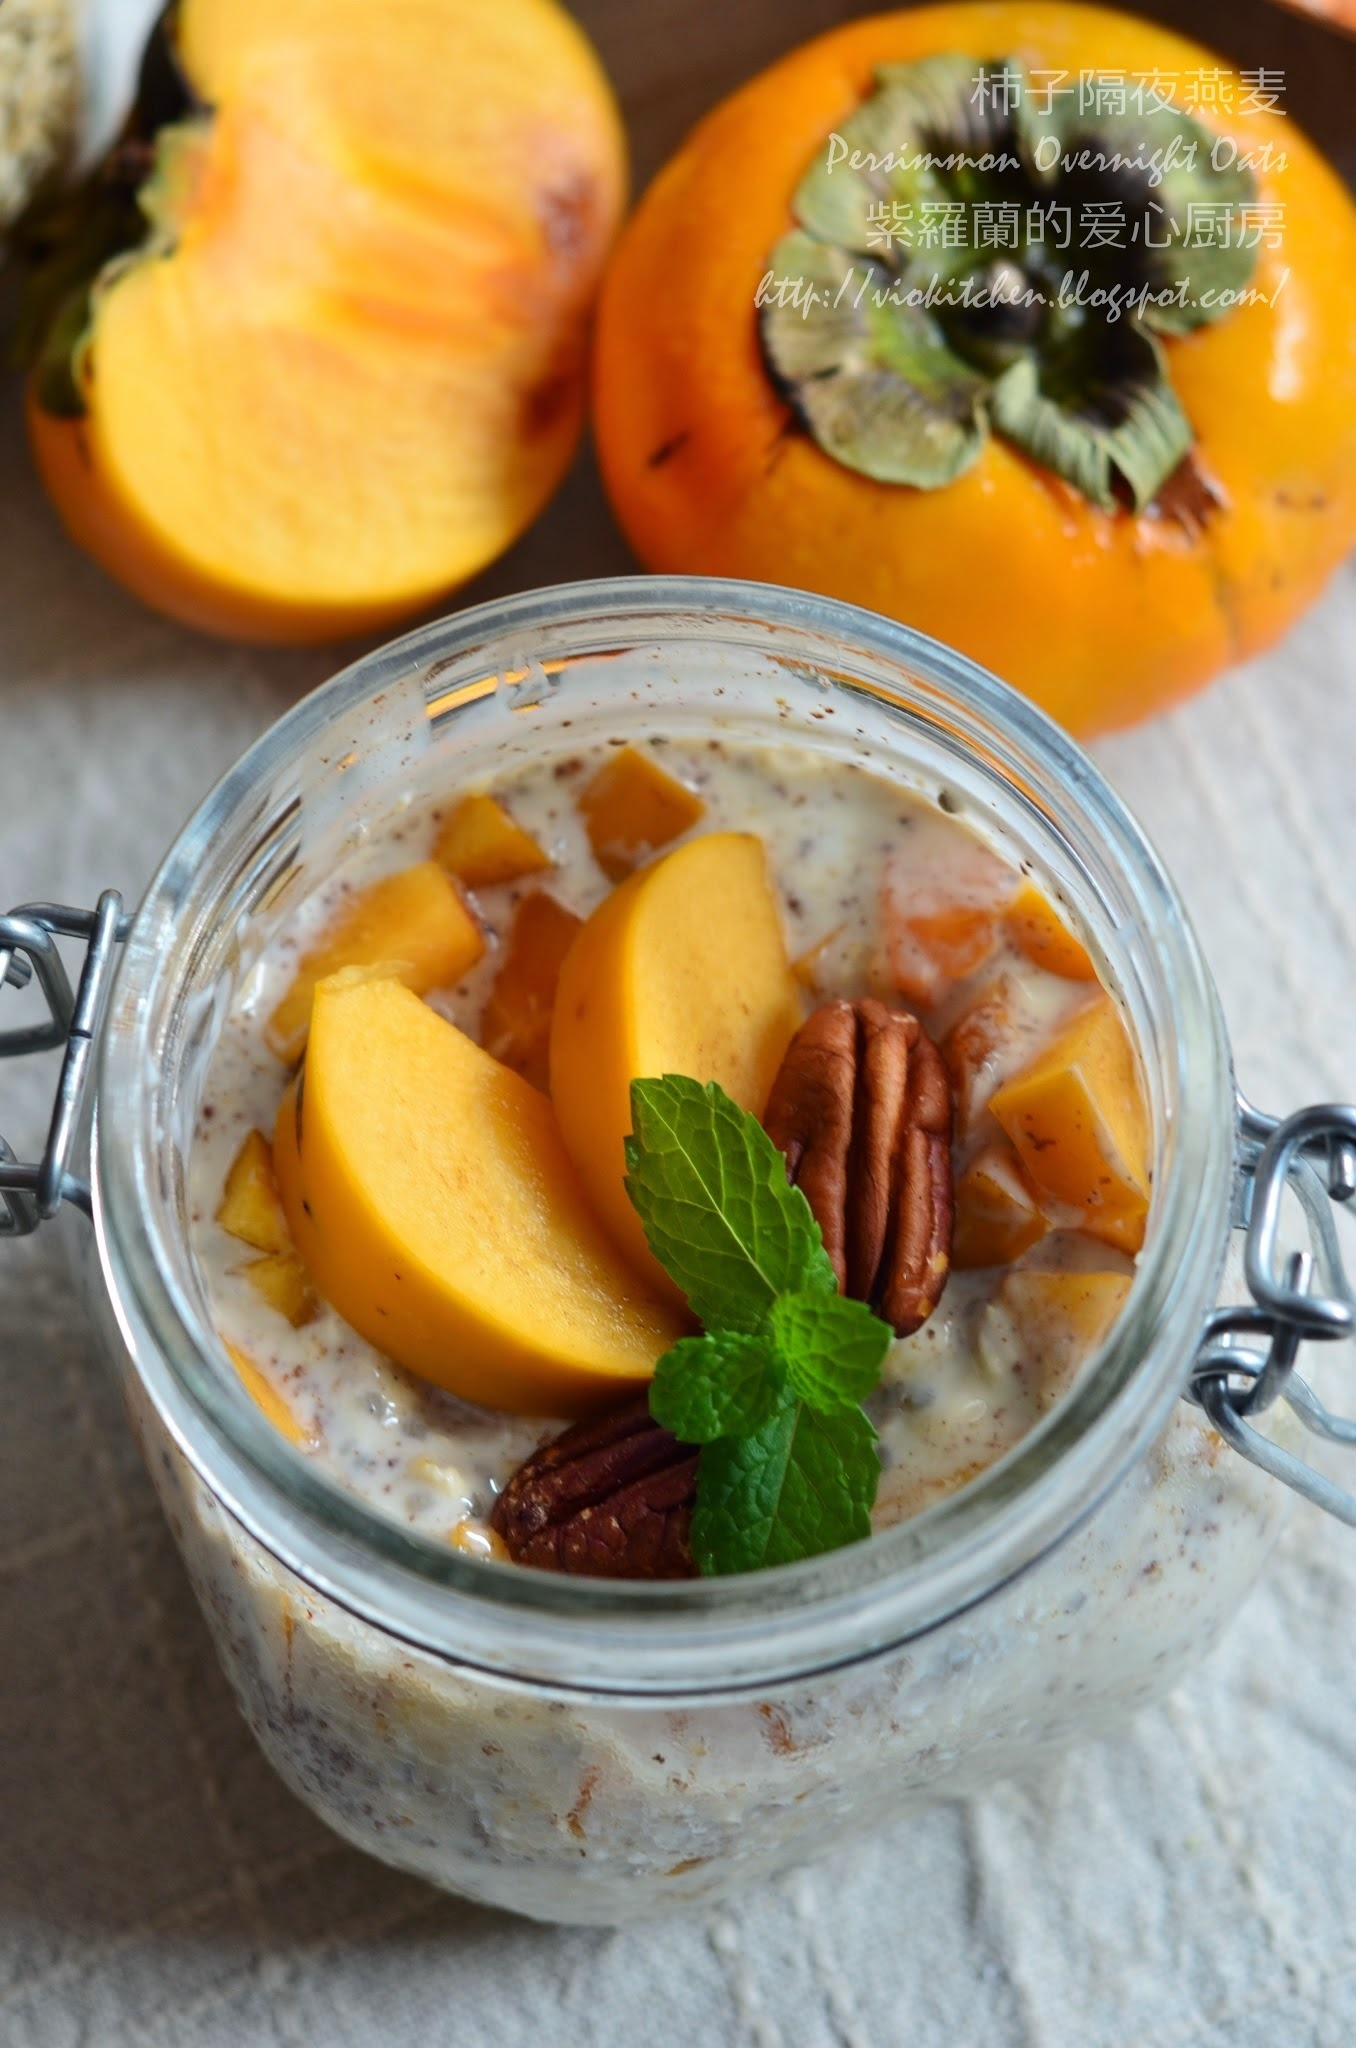 柿子隔夜燕麦 Persimmon Overnight Oats